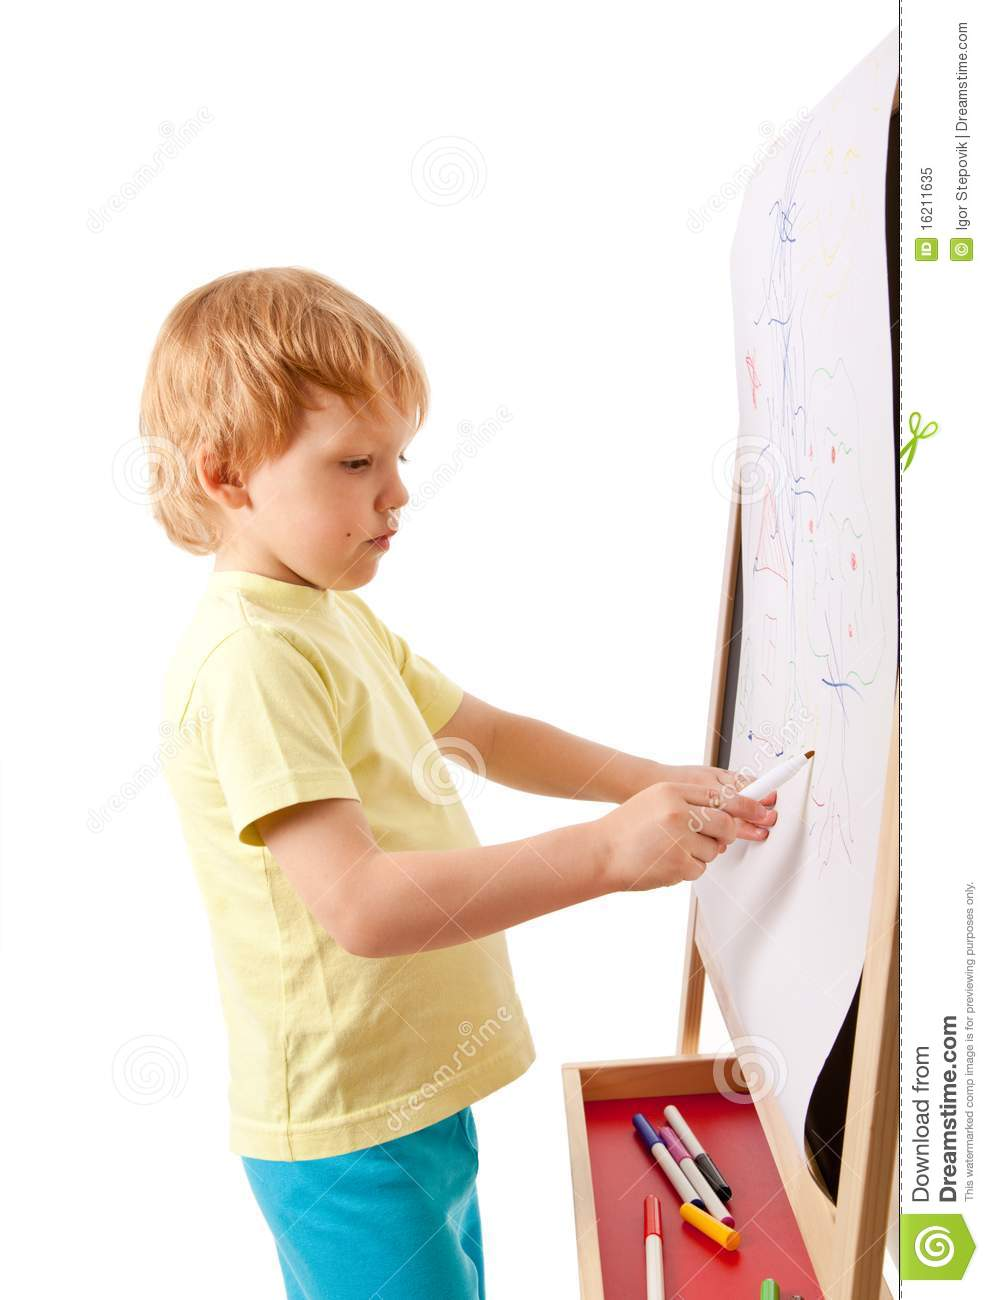 Four-year old boy drawing picture on easel